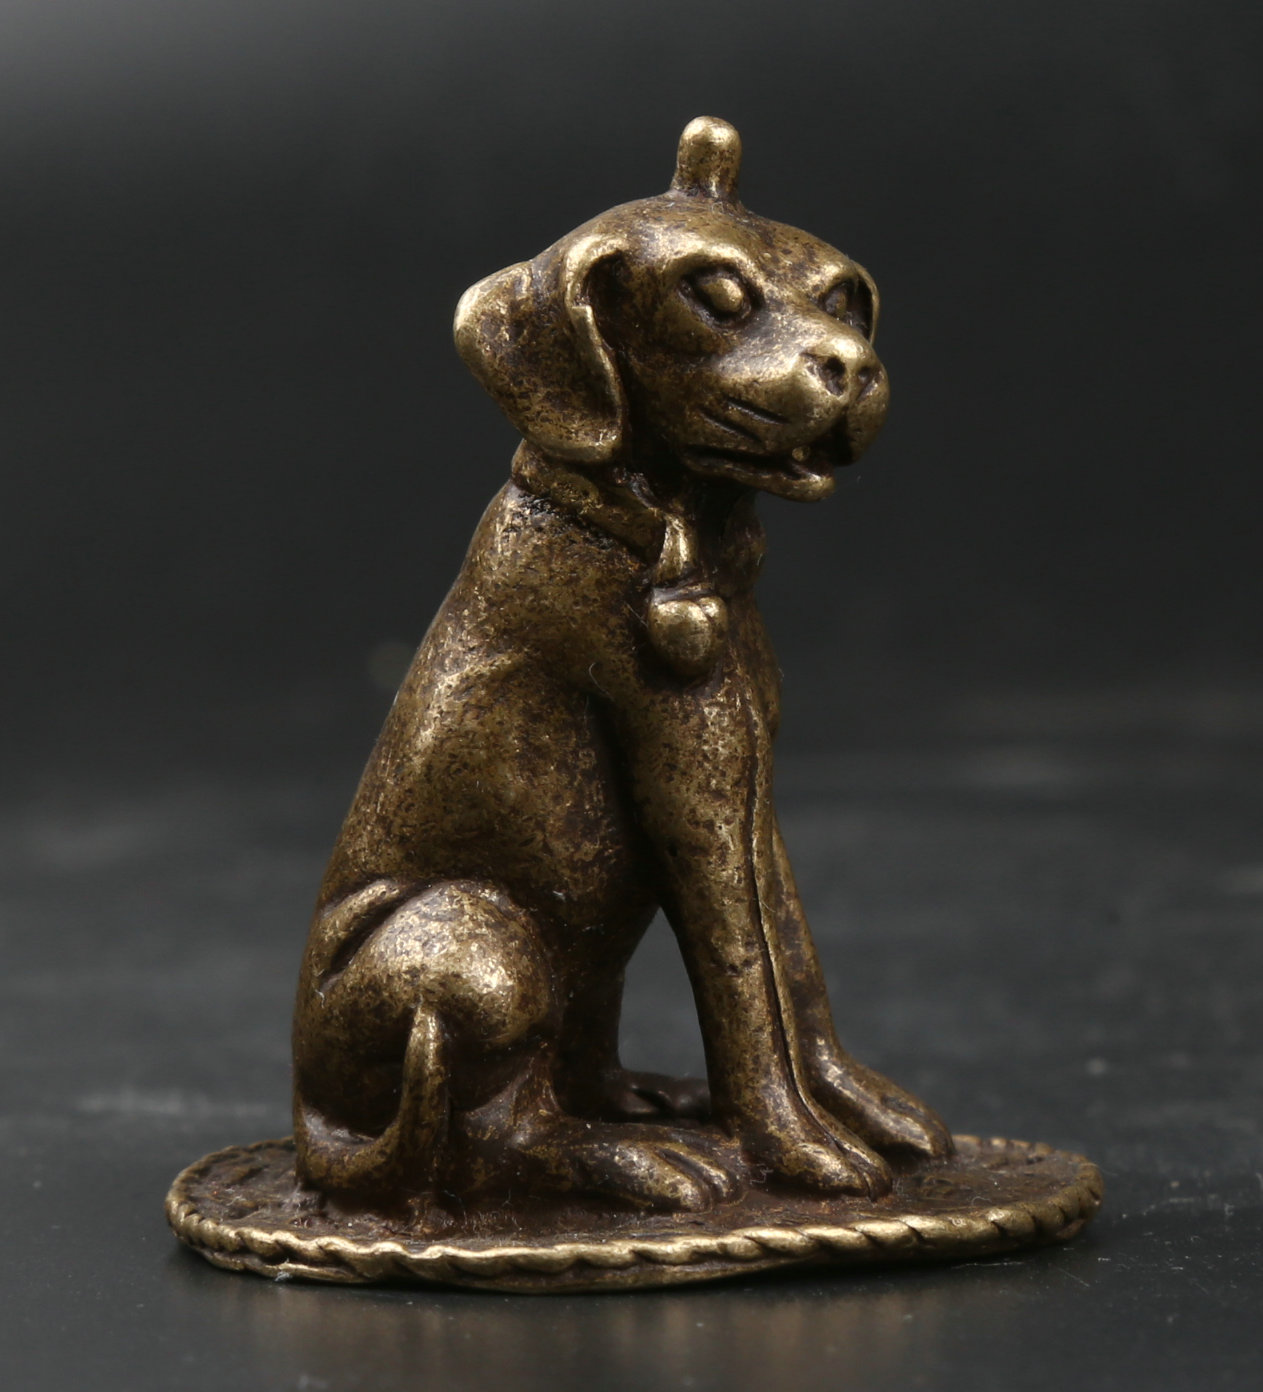 51MM/2 Collect Curio Rare Chinese Fengshui Small Bronze Exquisite Lovely Animal 12 Zodiac Year Bell Dog Doggy Statue 92g